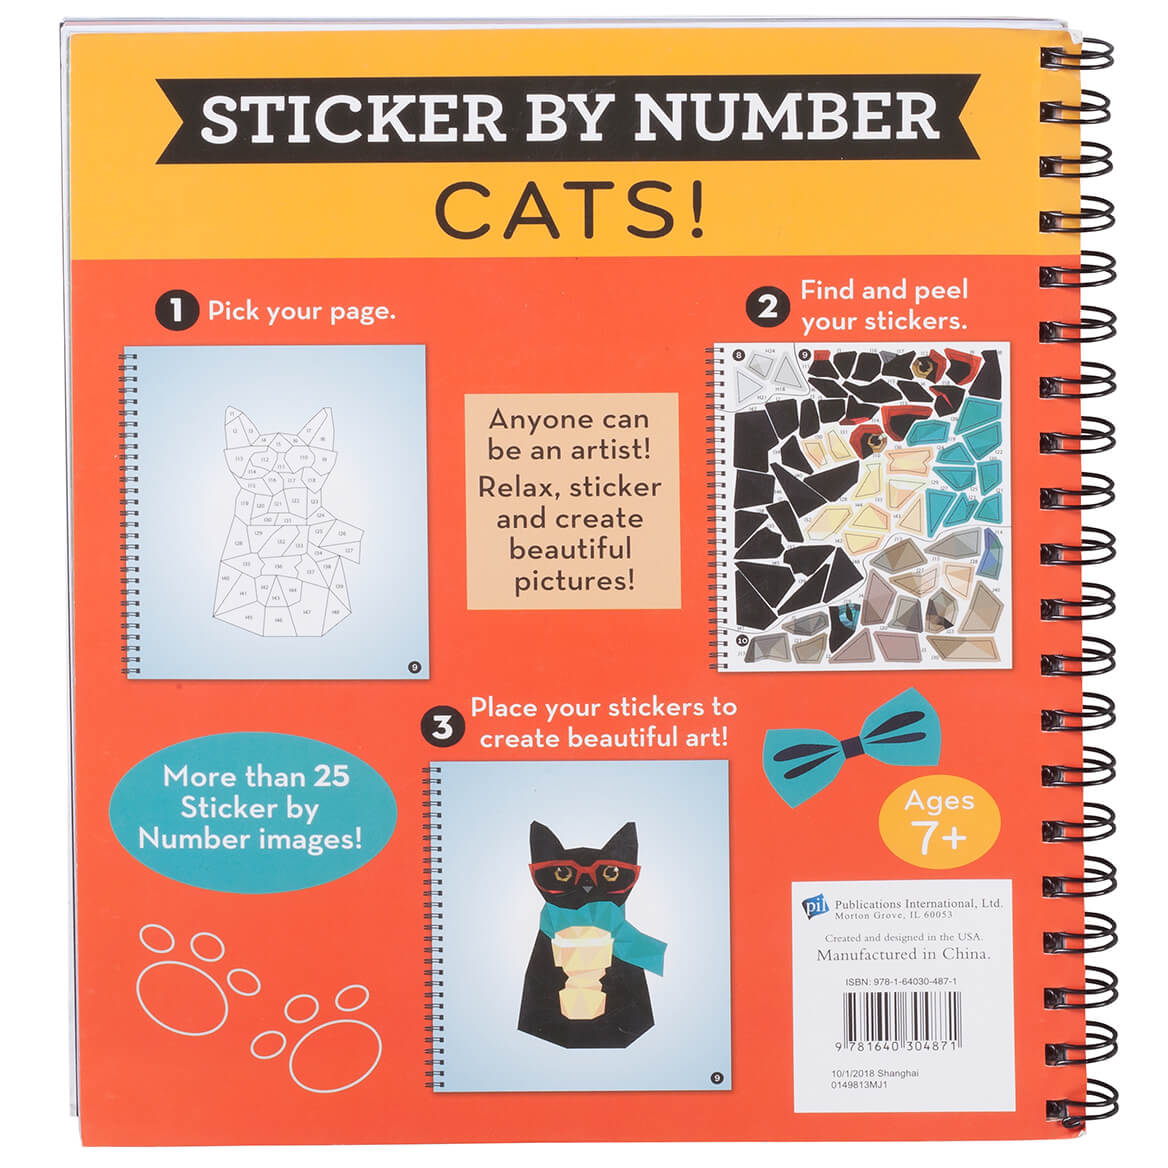 Brain Games® Sticker by Number Cats! Book-367334